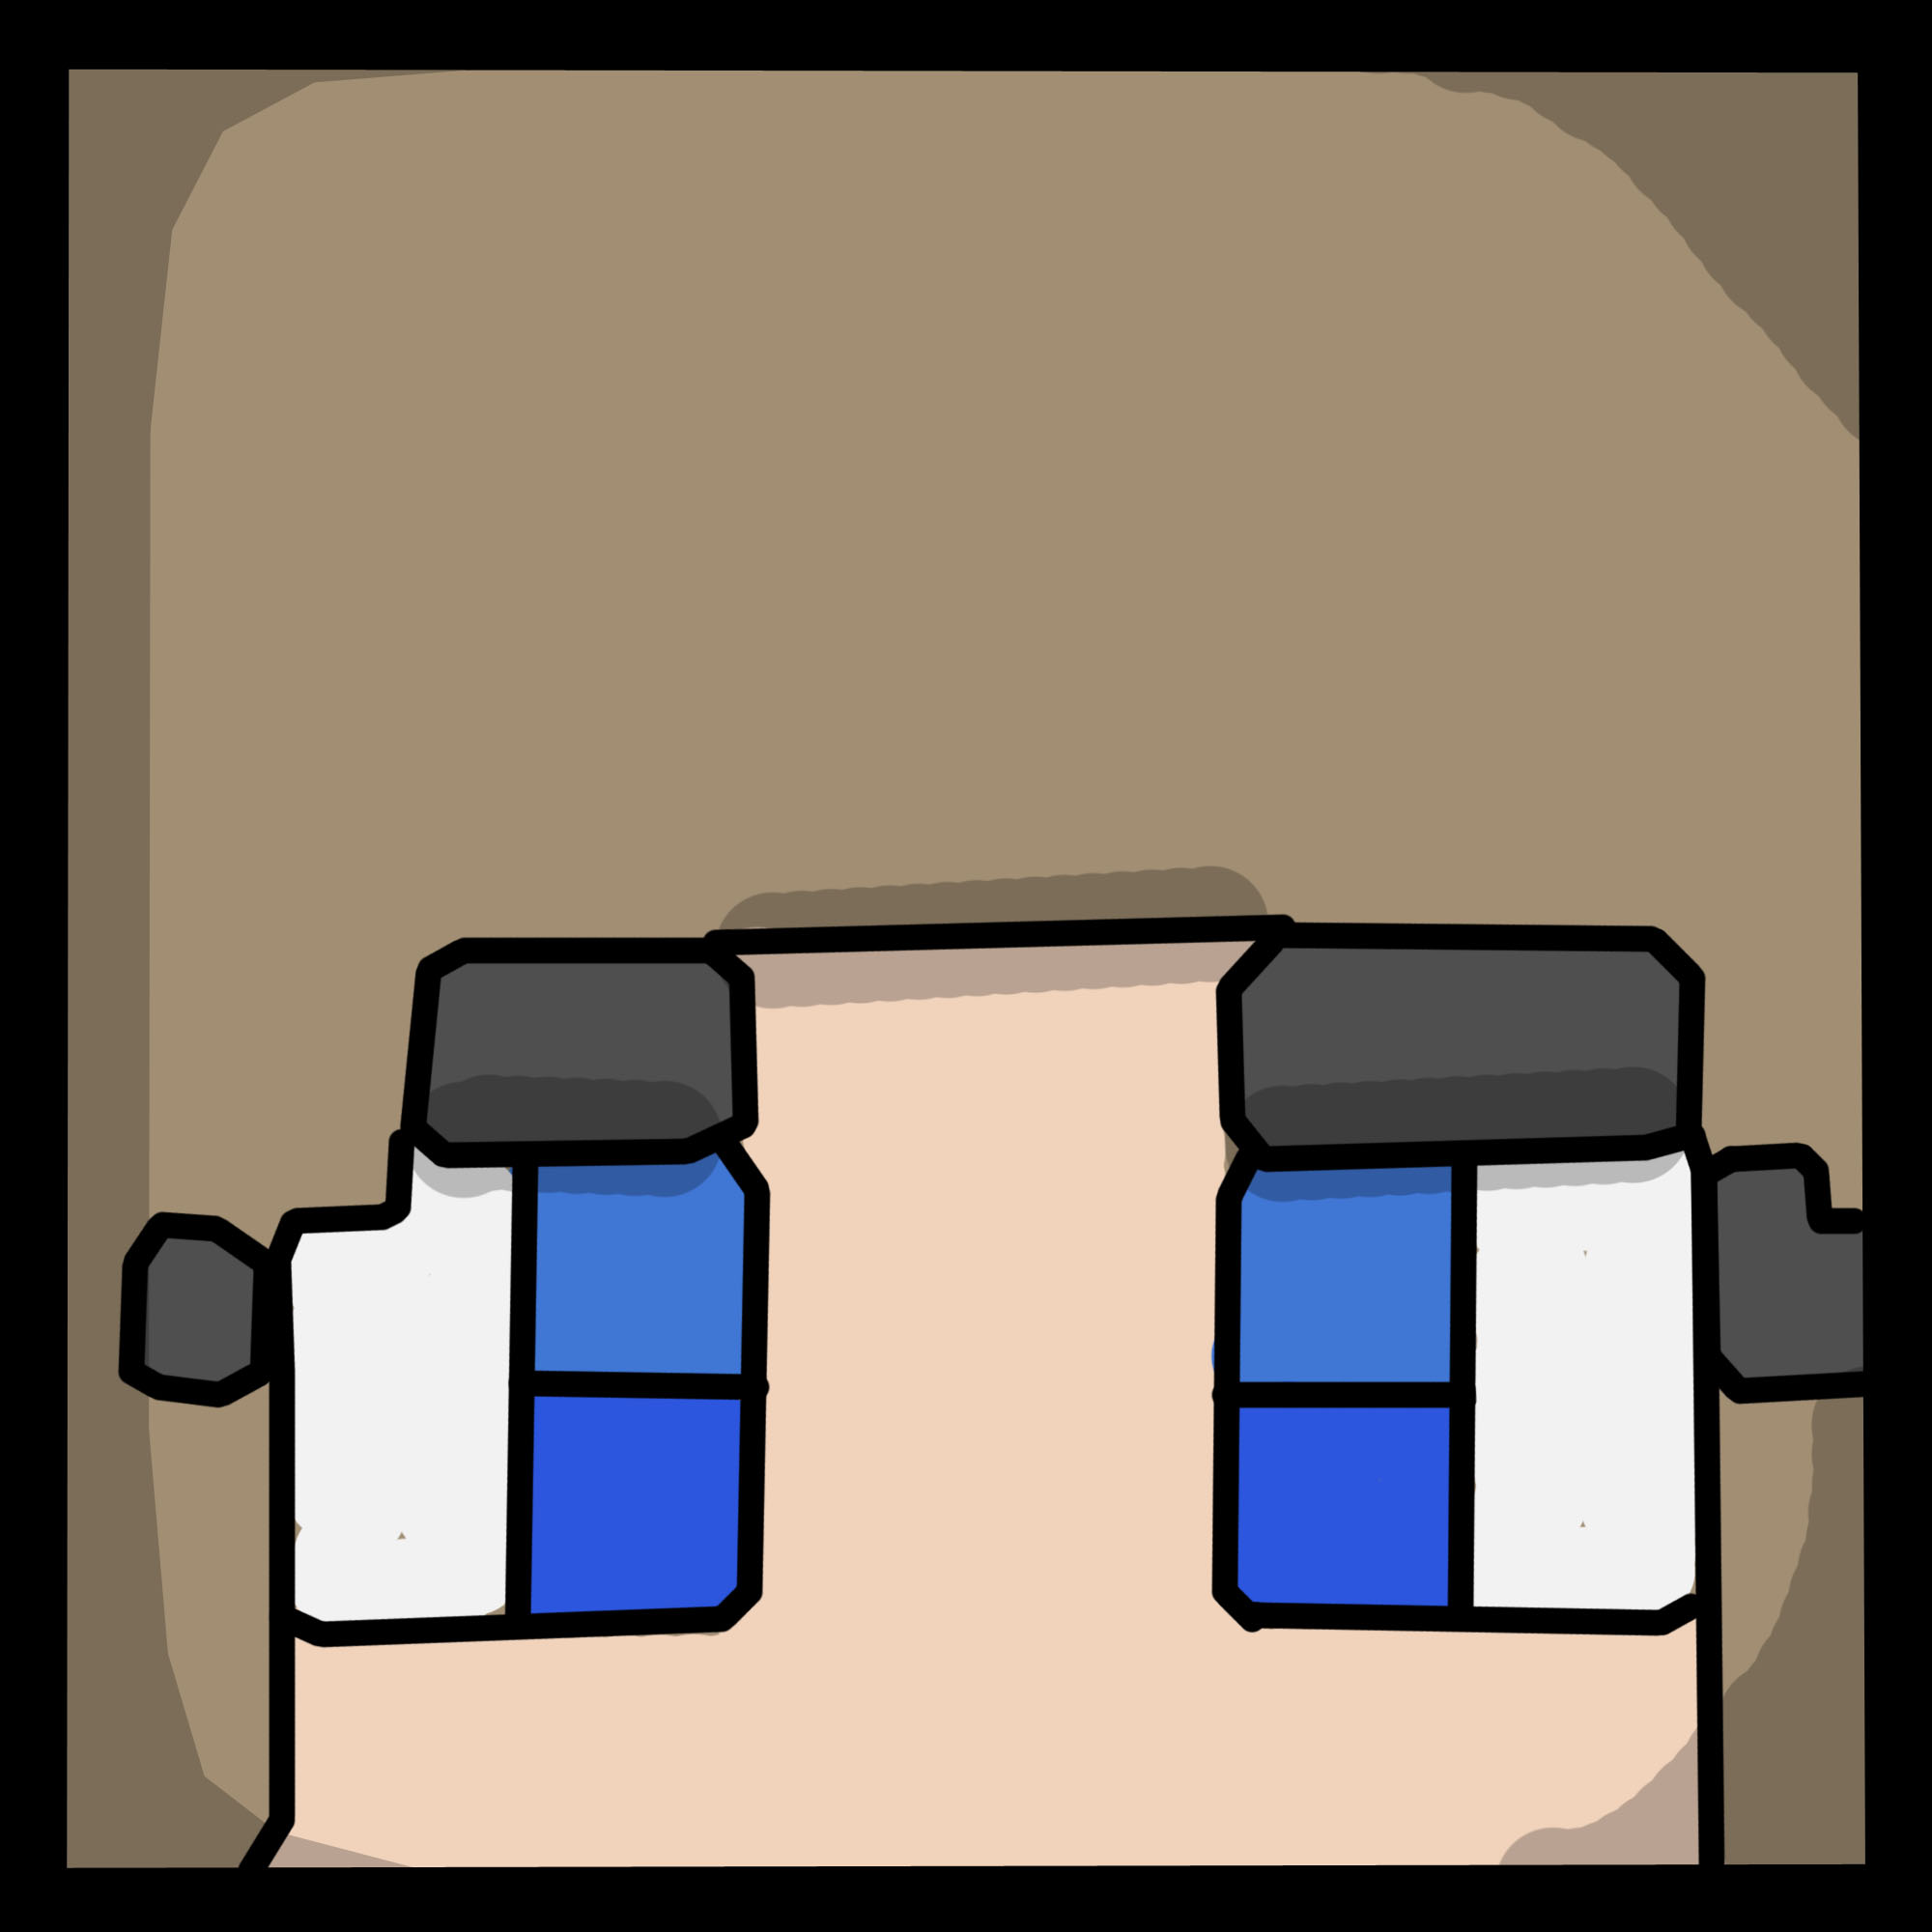 2000x2000 Drawing Minecraft Skins For Free!!!